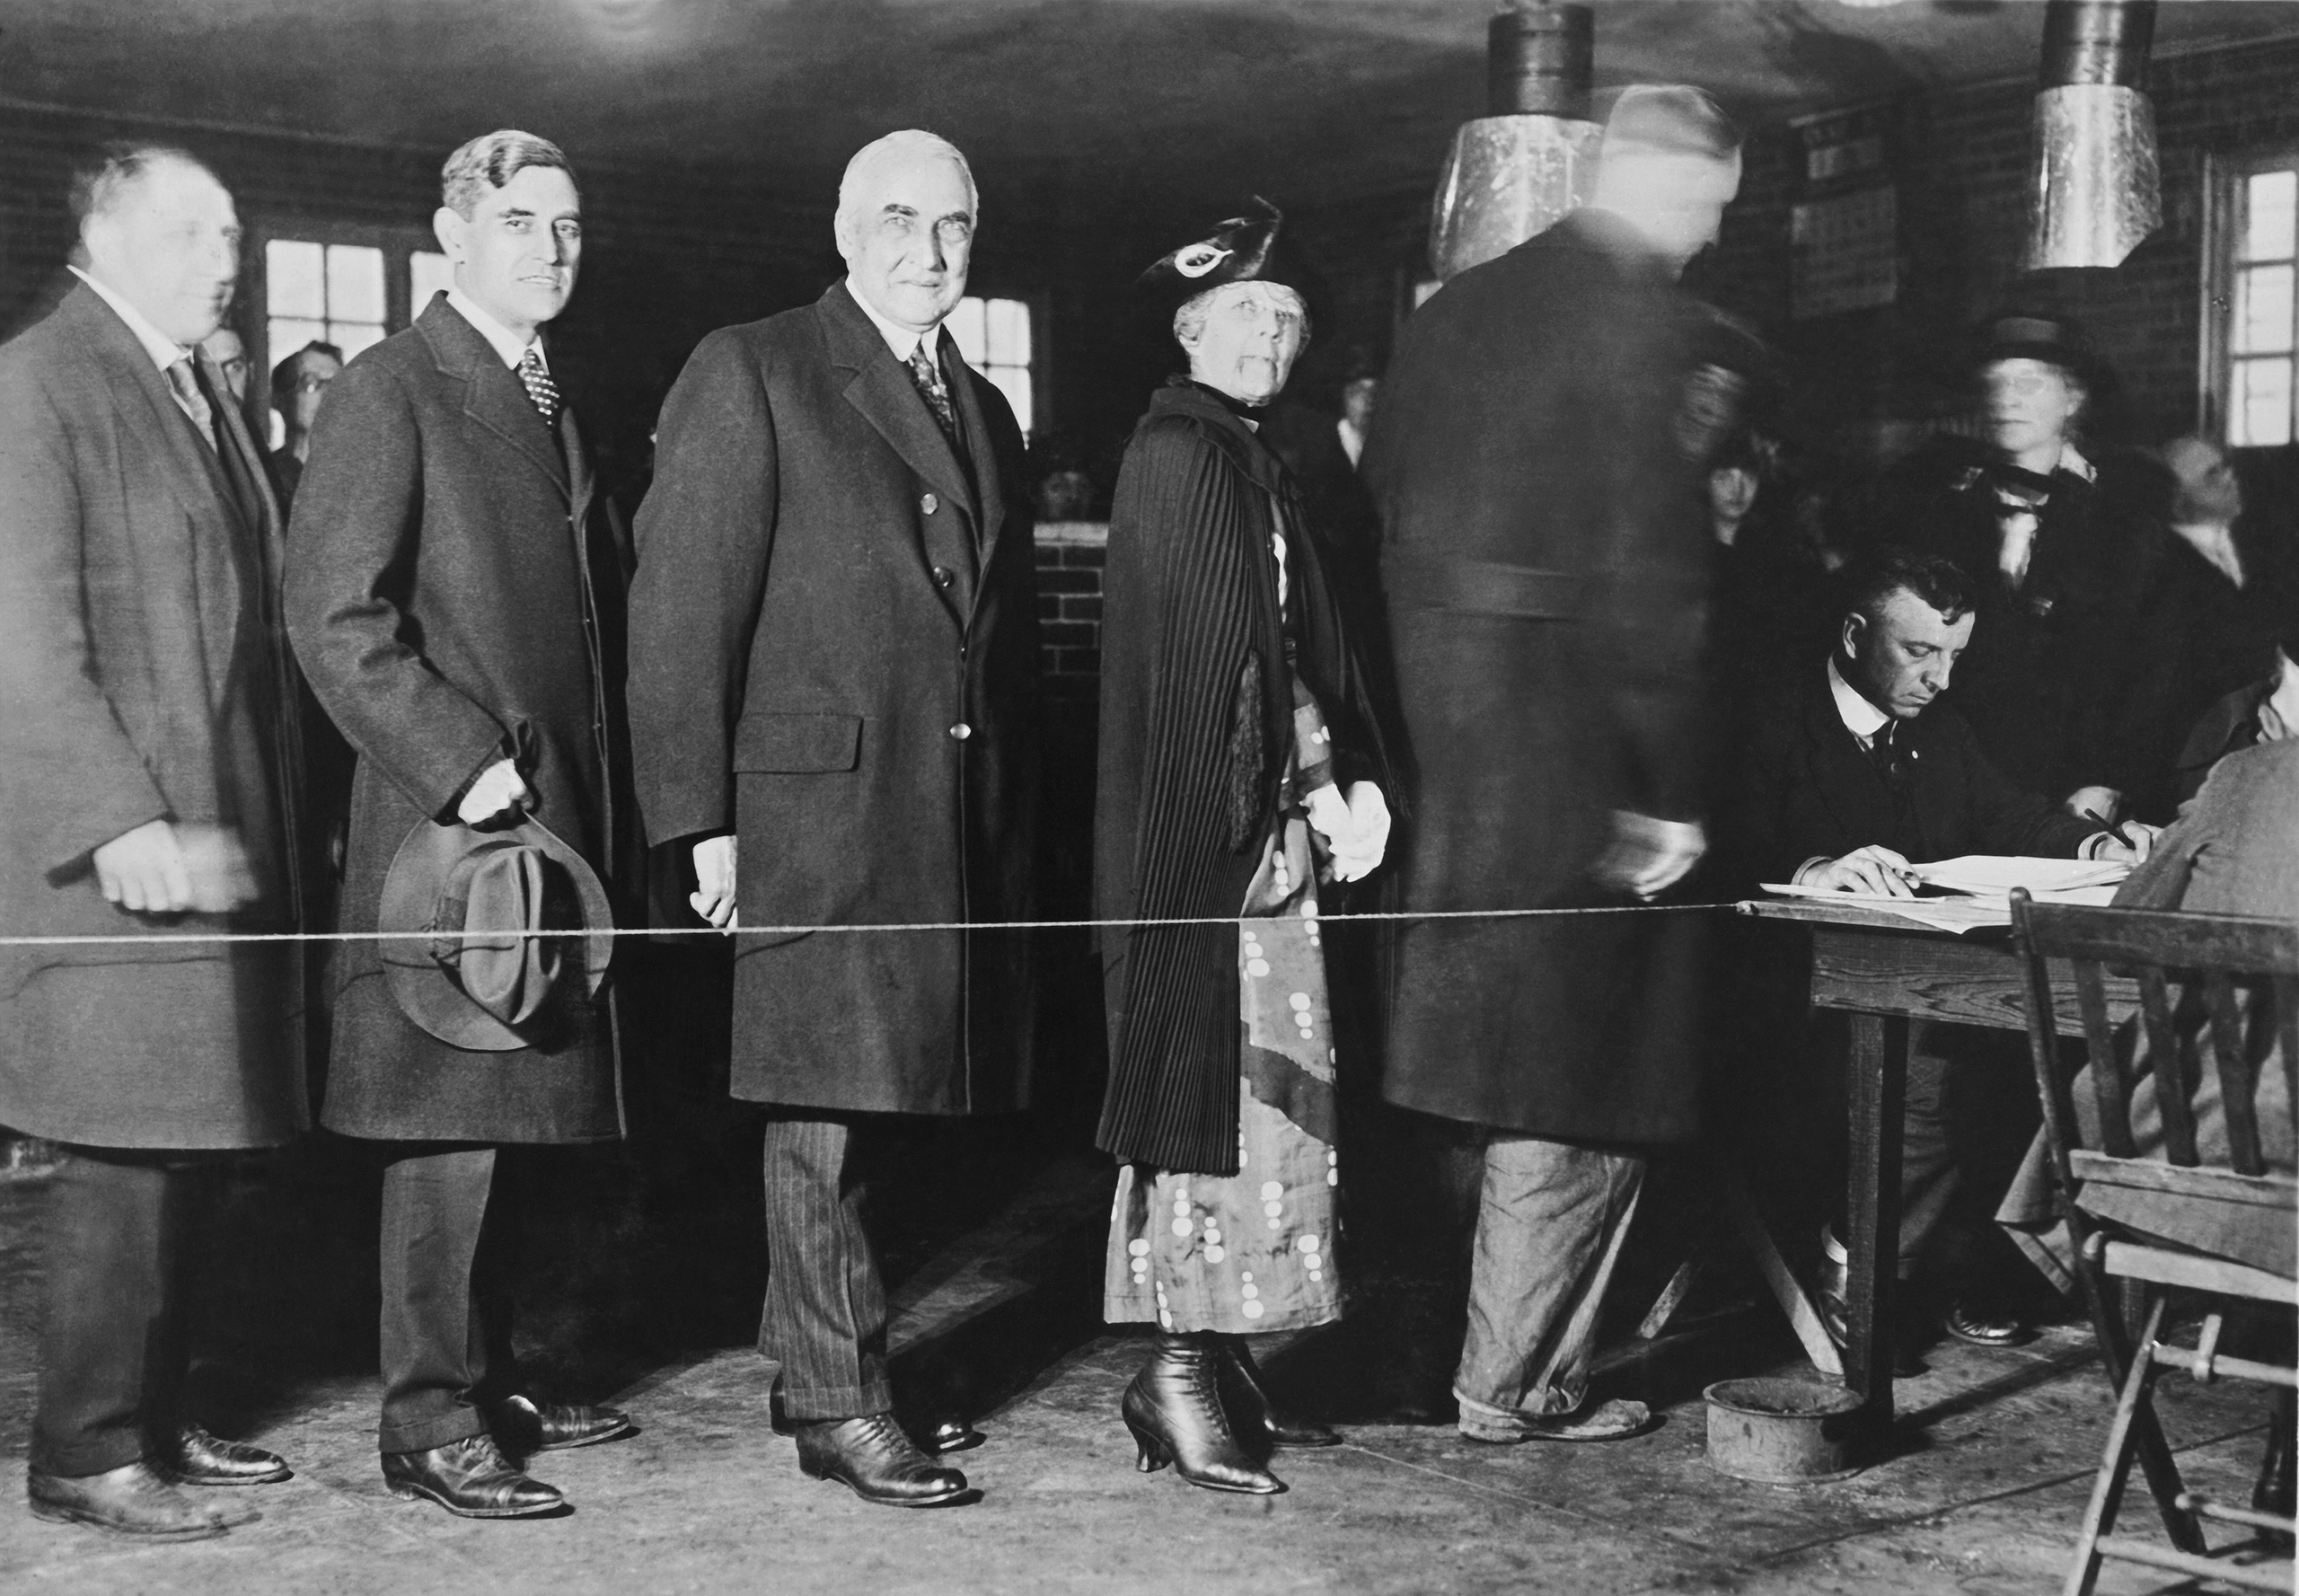 Mr. and Mrs. Warren G. Harding stand in line to vote in the presidential election, in 1920.